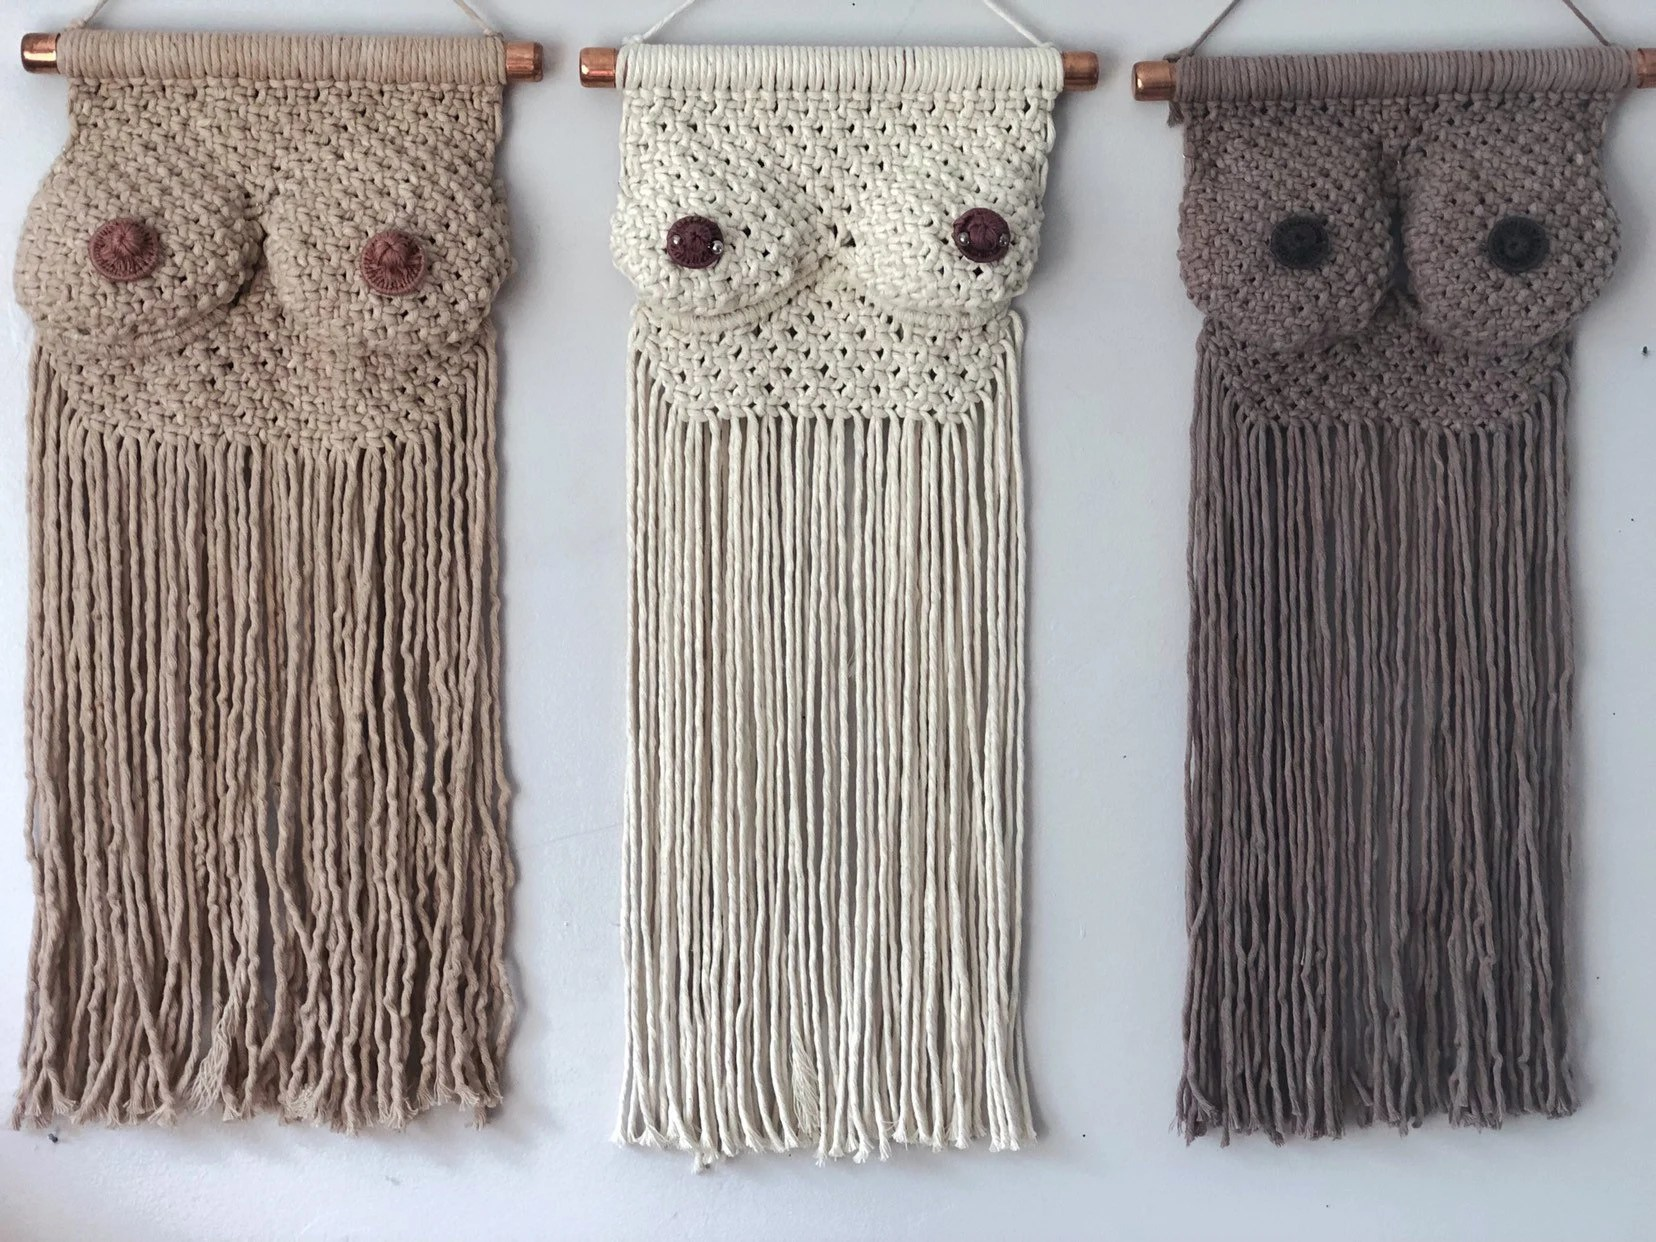 Macrame Boobs/Macrame Boobies/Personalized Breast Wall Hanging/Bedroom Decor/Boudoir/Boob Art/Feminist/Goddess/Breast Cancer Support                                                                    UnfetteredCo         From shop UnfetteredCo                               5 out of 5 stars                                                                                                                                                                                                                                                          (1,416)                 1,416 reviews                                                      CA$125.00                                                                   FREE delivery